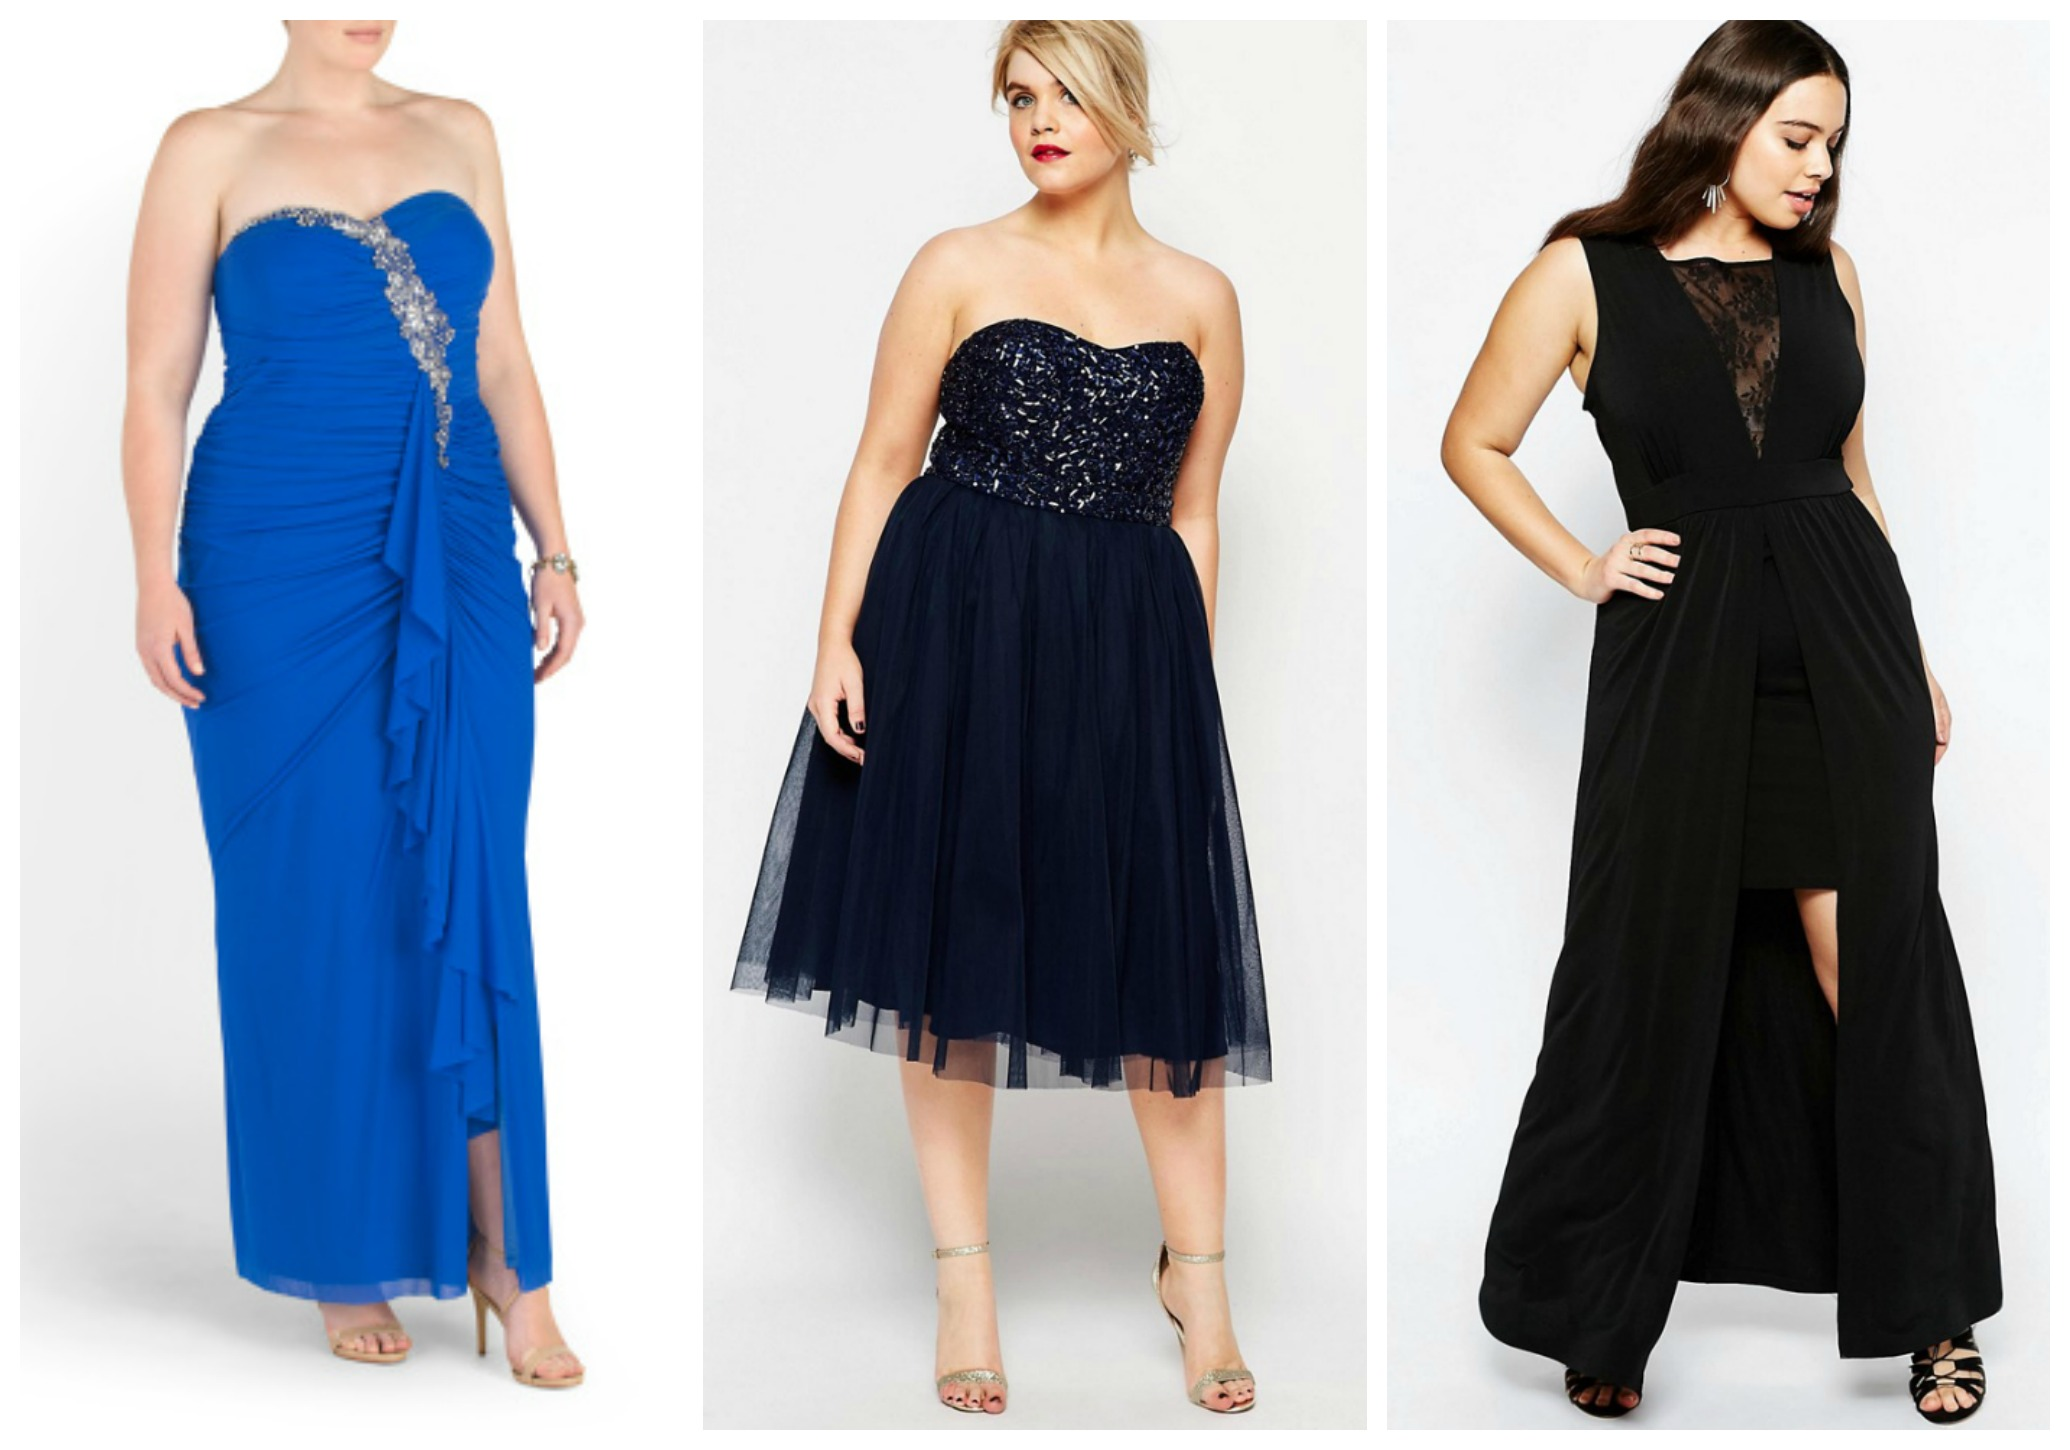 Plus Size Prom Dresses Under $100